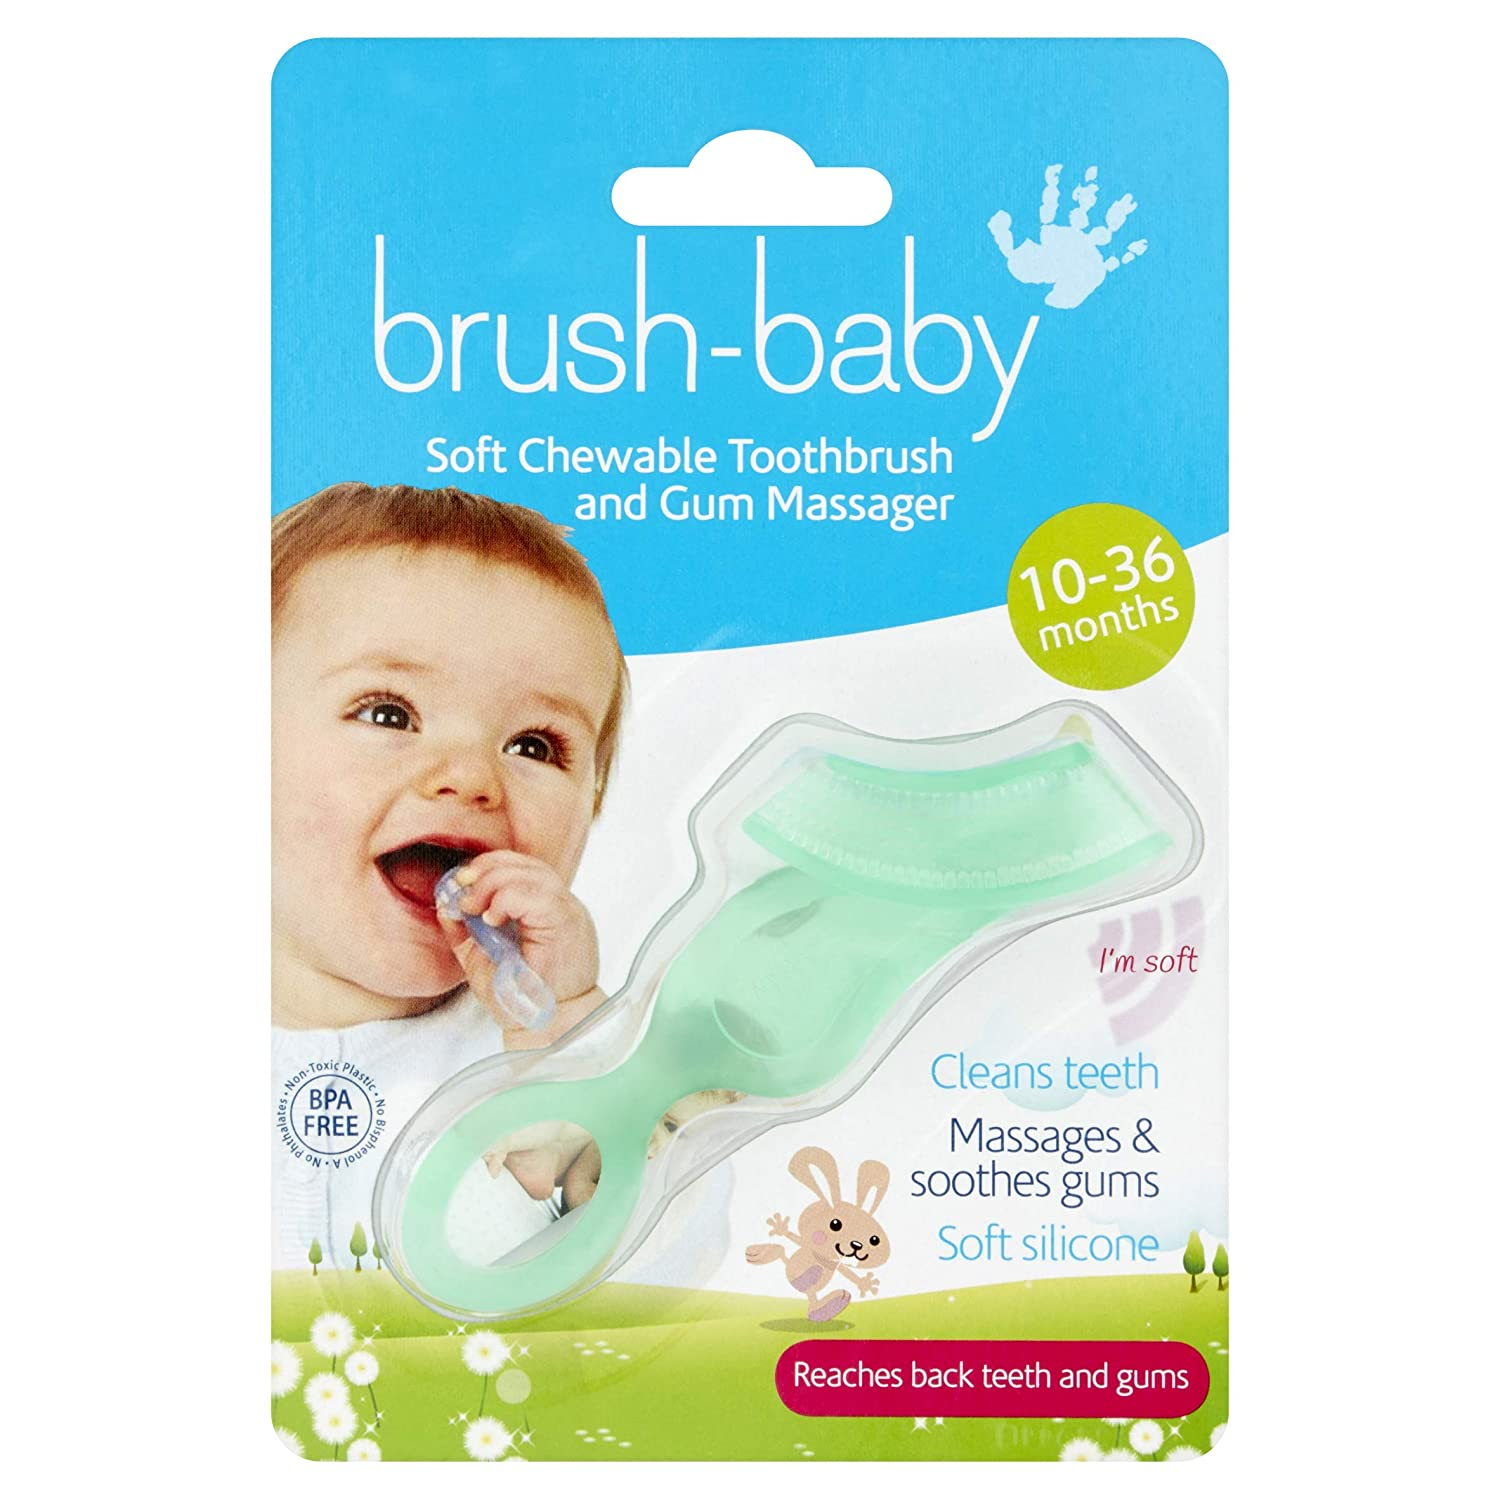 Brush-Baby Soft Clear Chewable Toothbrush (10months - 3years) - Massages, Soothes & Cleans BabyCenter BRB001 X96